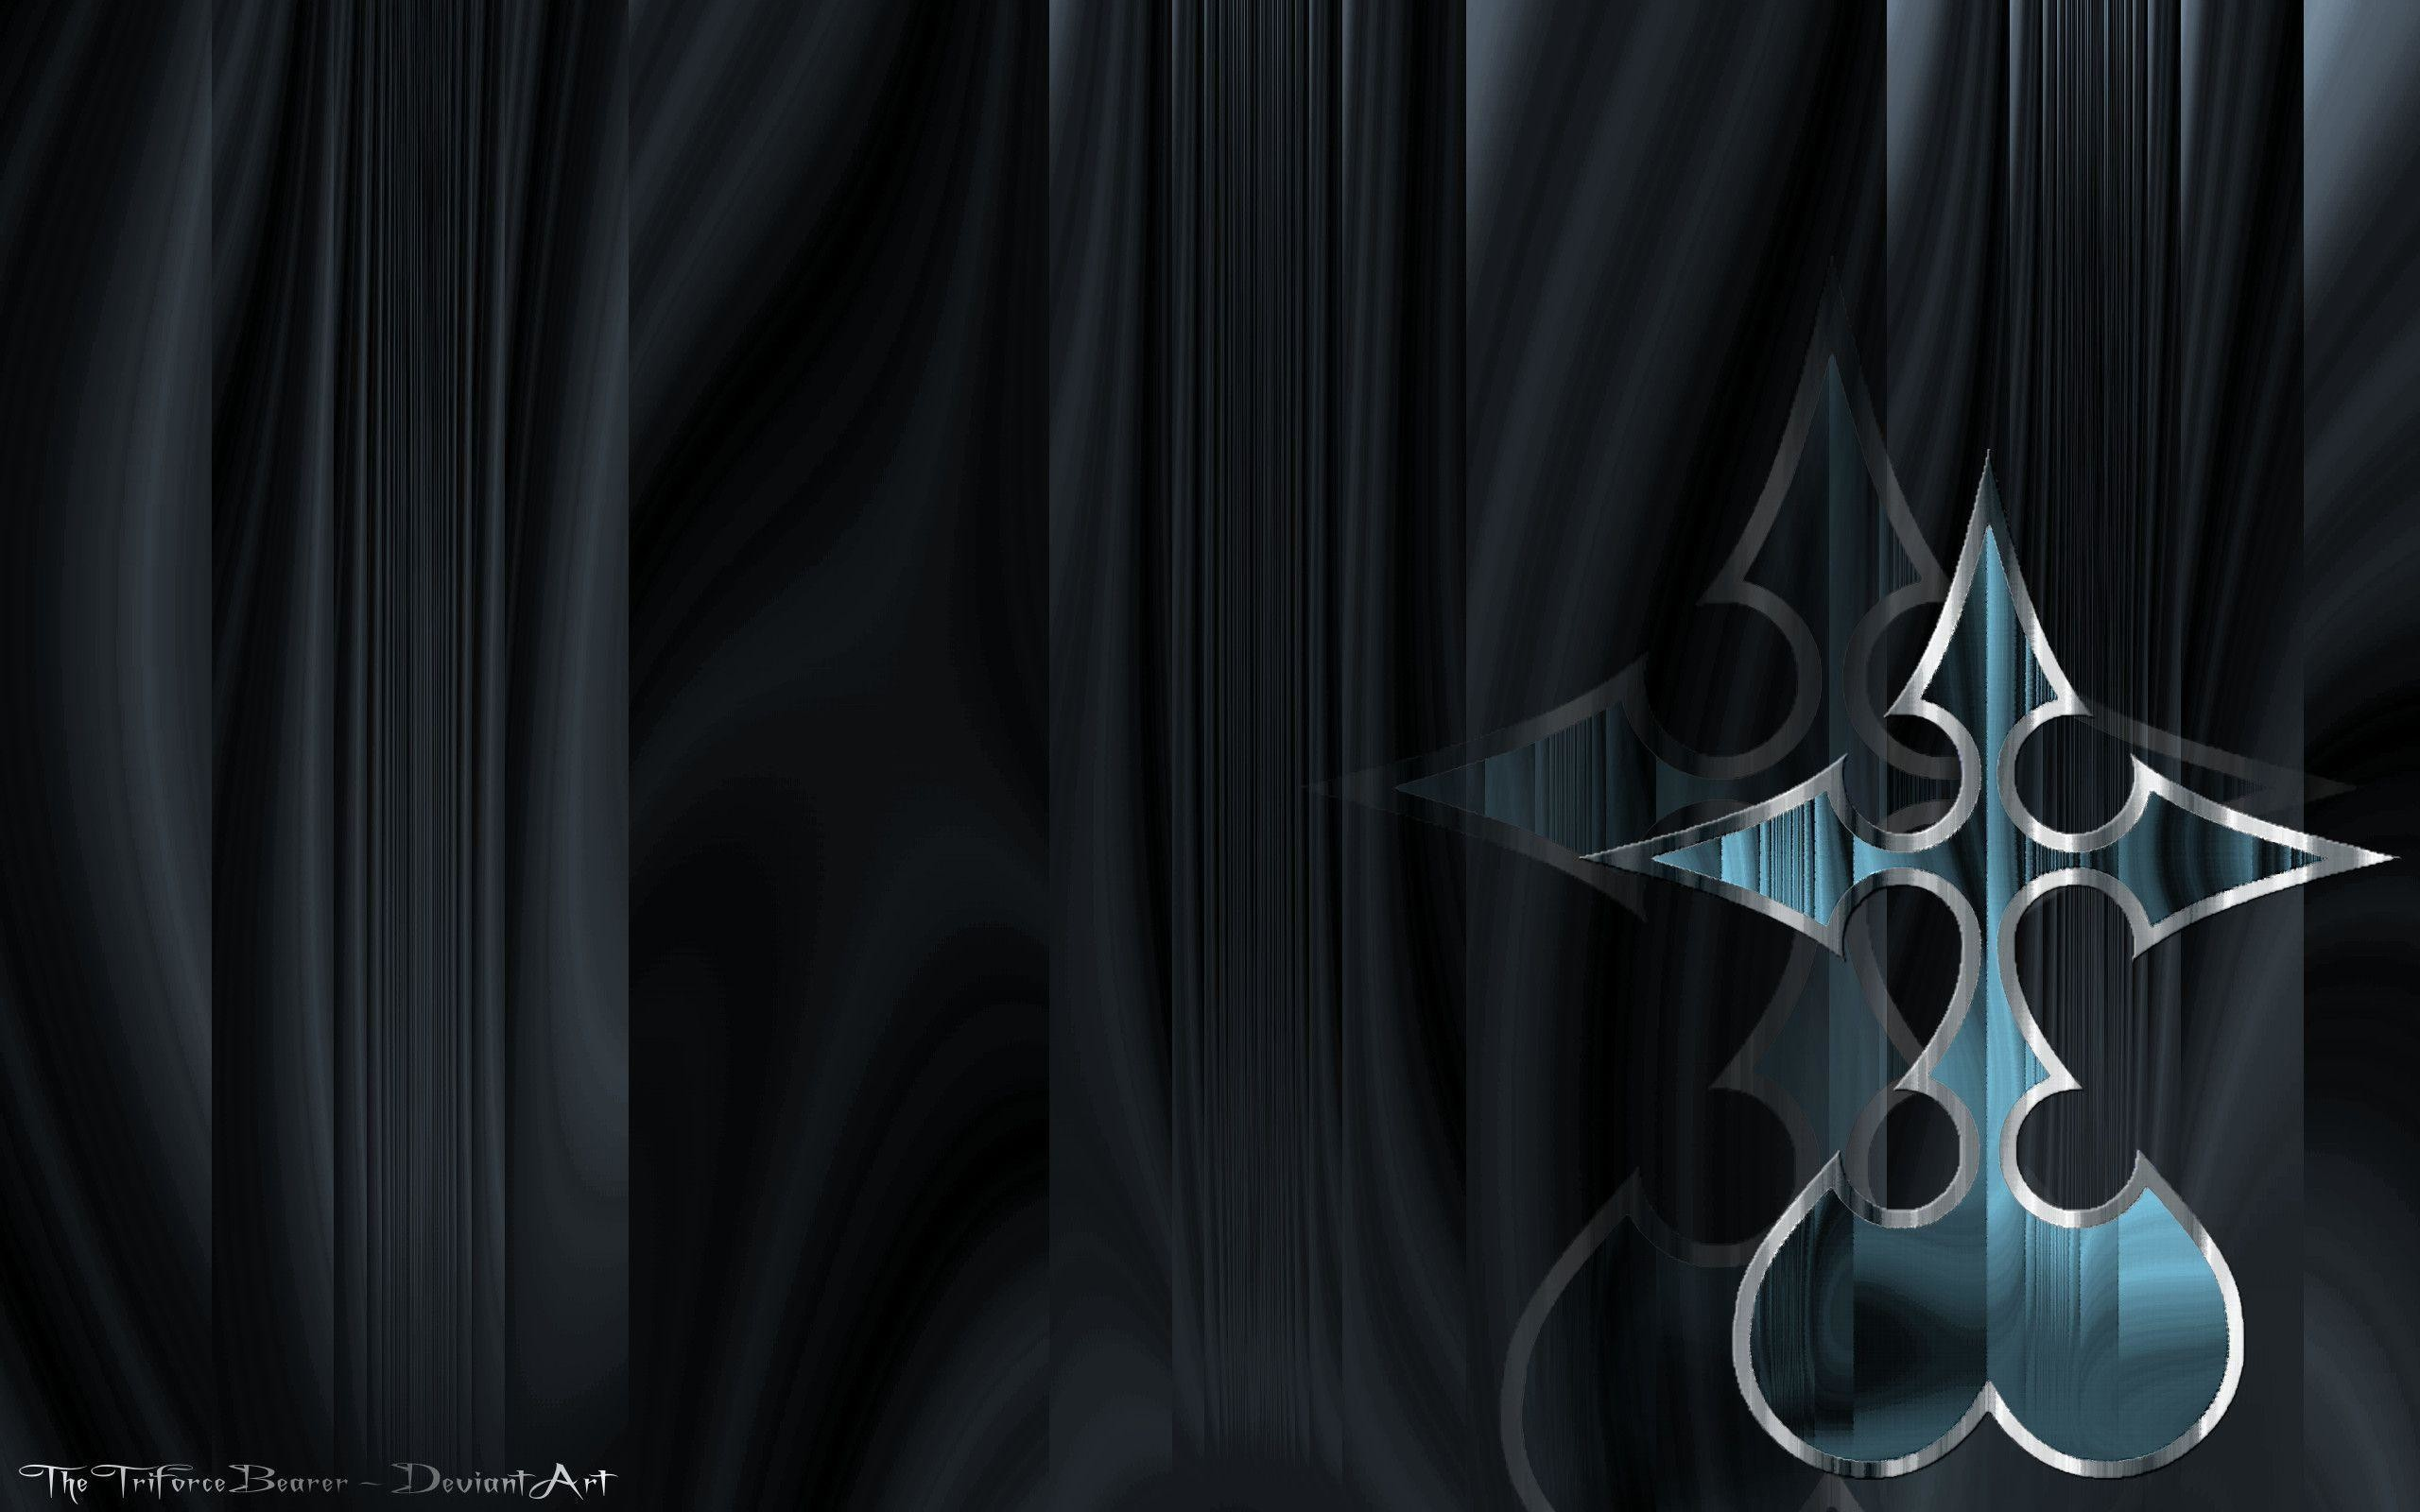 2560x1600 Kingdom Hearts Heartless Wallpapers - Wallpaper Cave